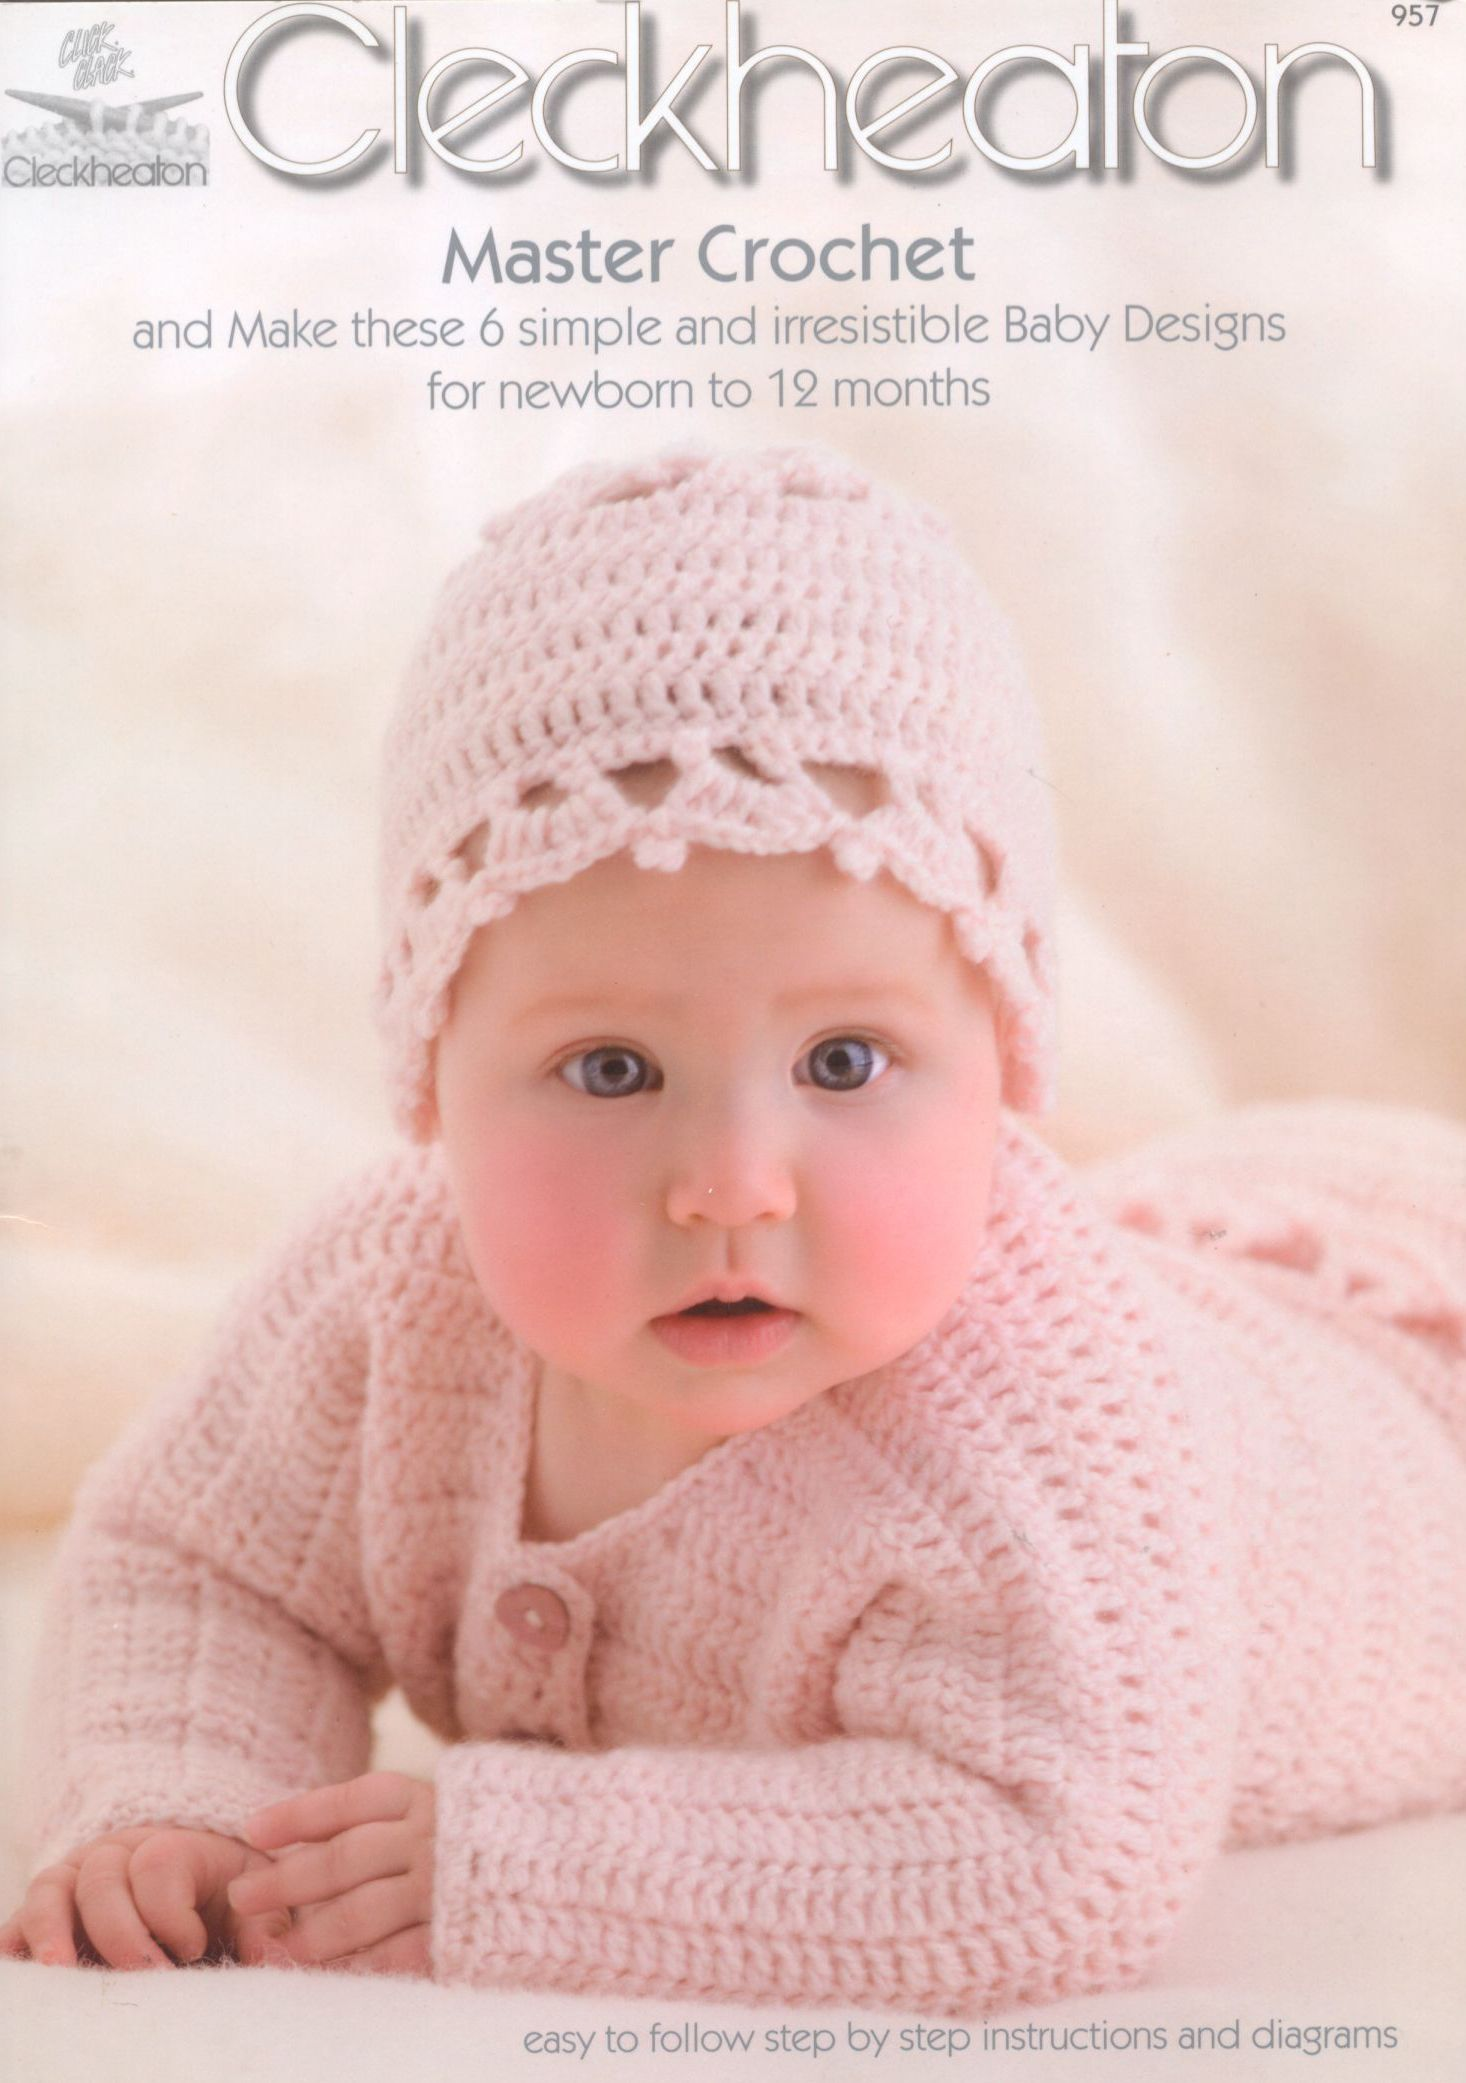 Master Crochet - Cleckheaton Book 957 - 0 to 12 months1 s 1 of 40 ...